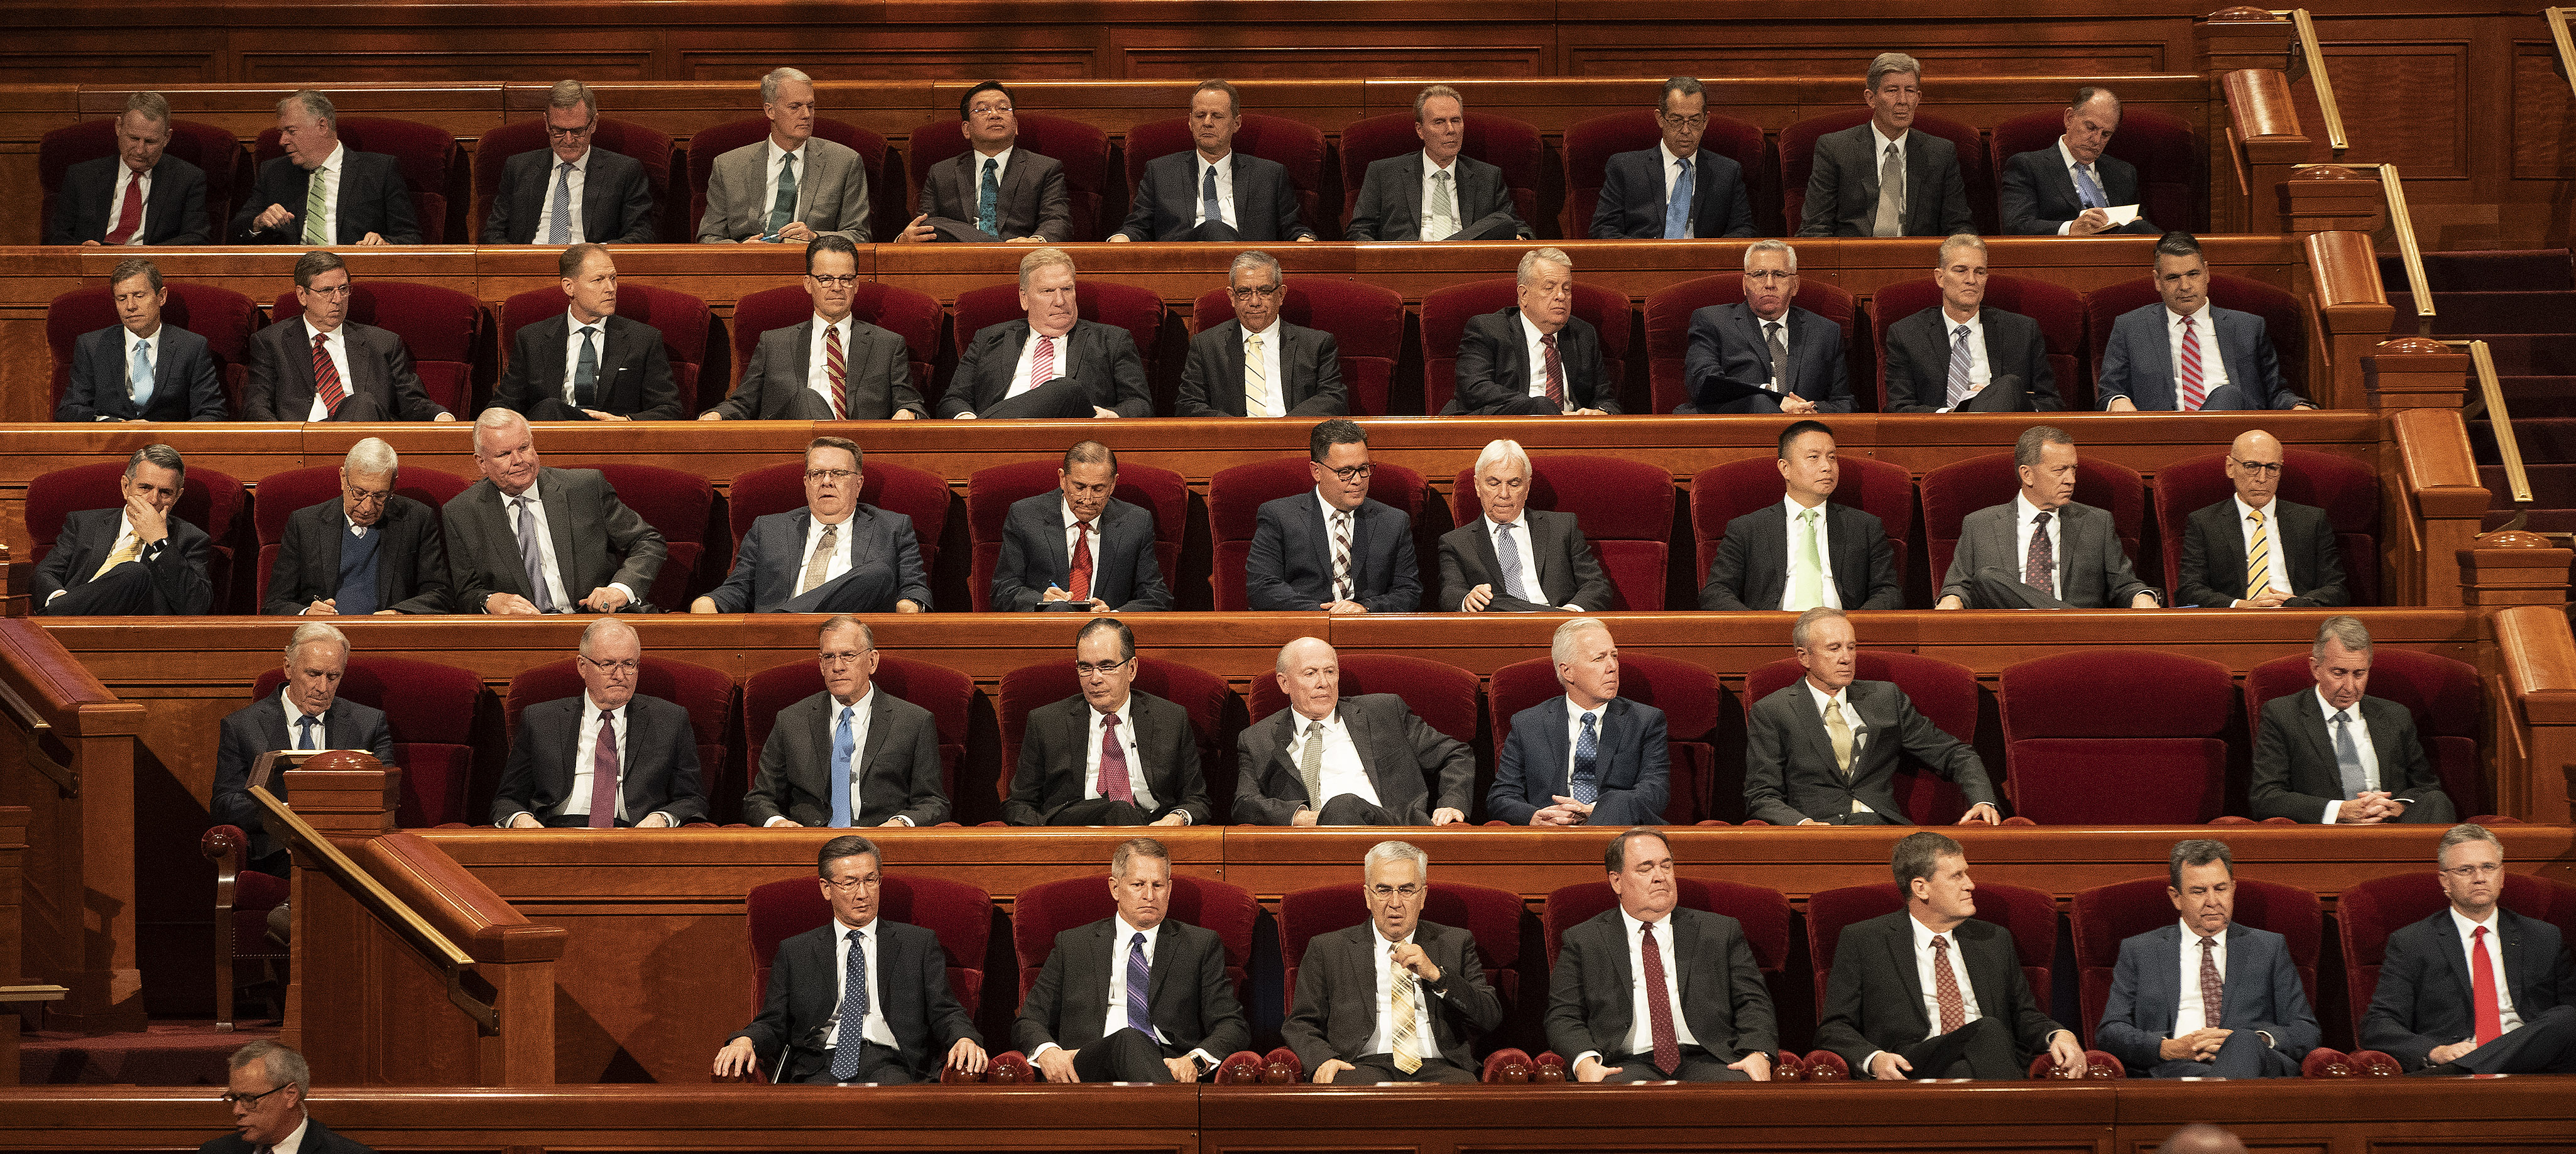 General authorities wait for the start of the Saturday morning session of the 189th Semiannual General Conference of The Church of Jesus Christ of Latter-day Saints at the Conference Center in Salt Lake City on Saturday, Oct. 5, 2019.